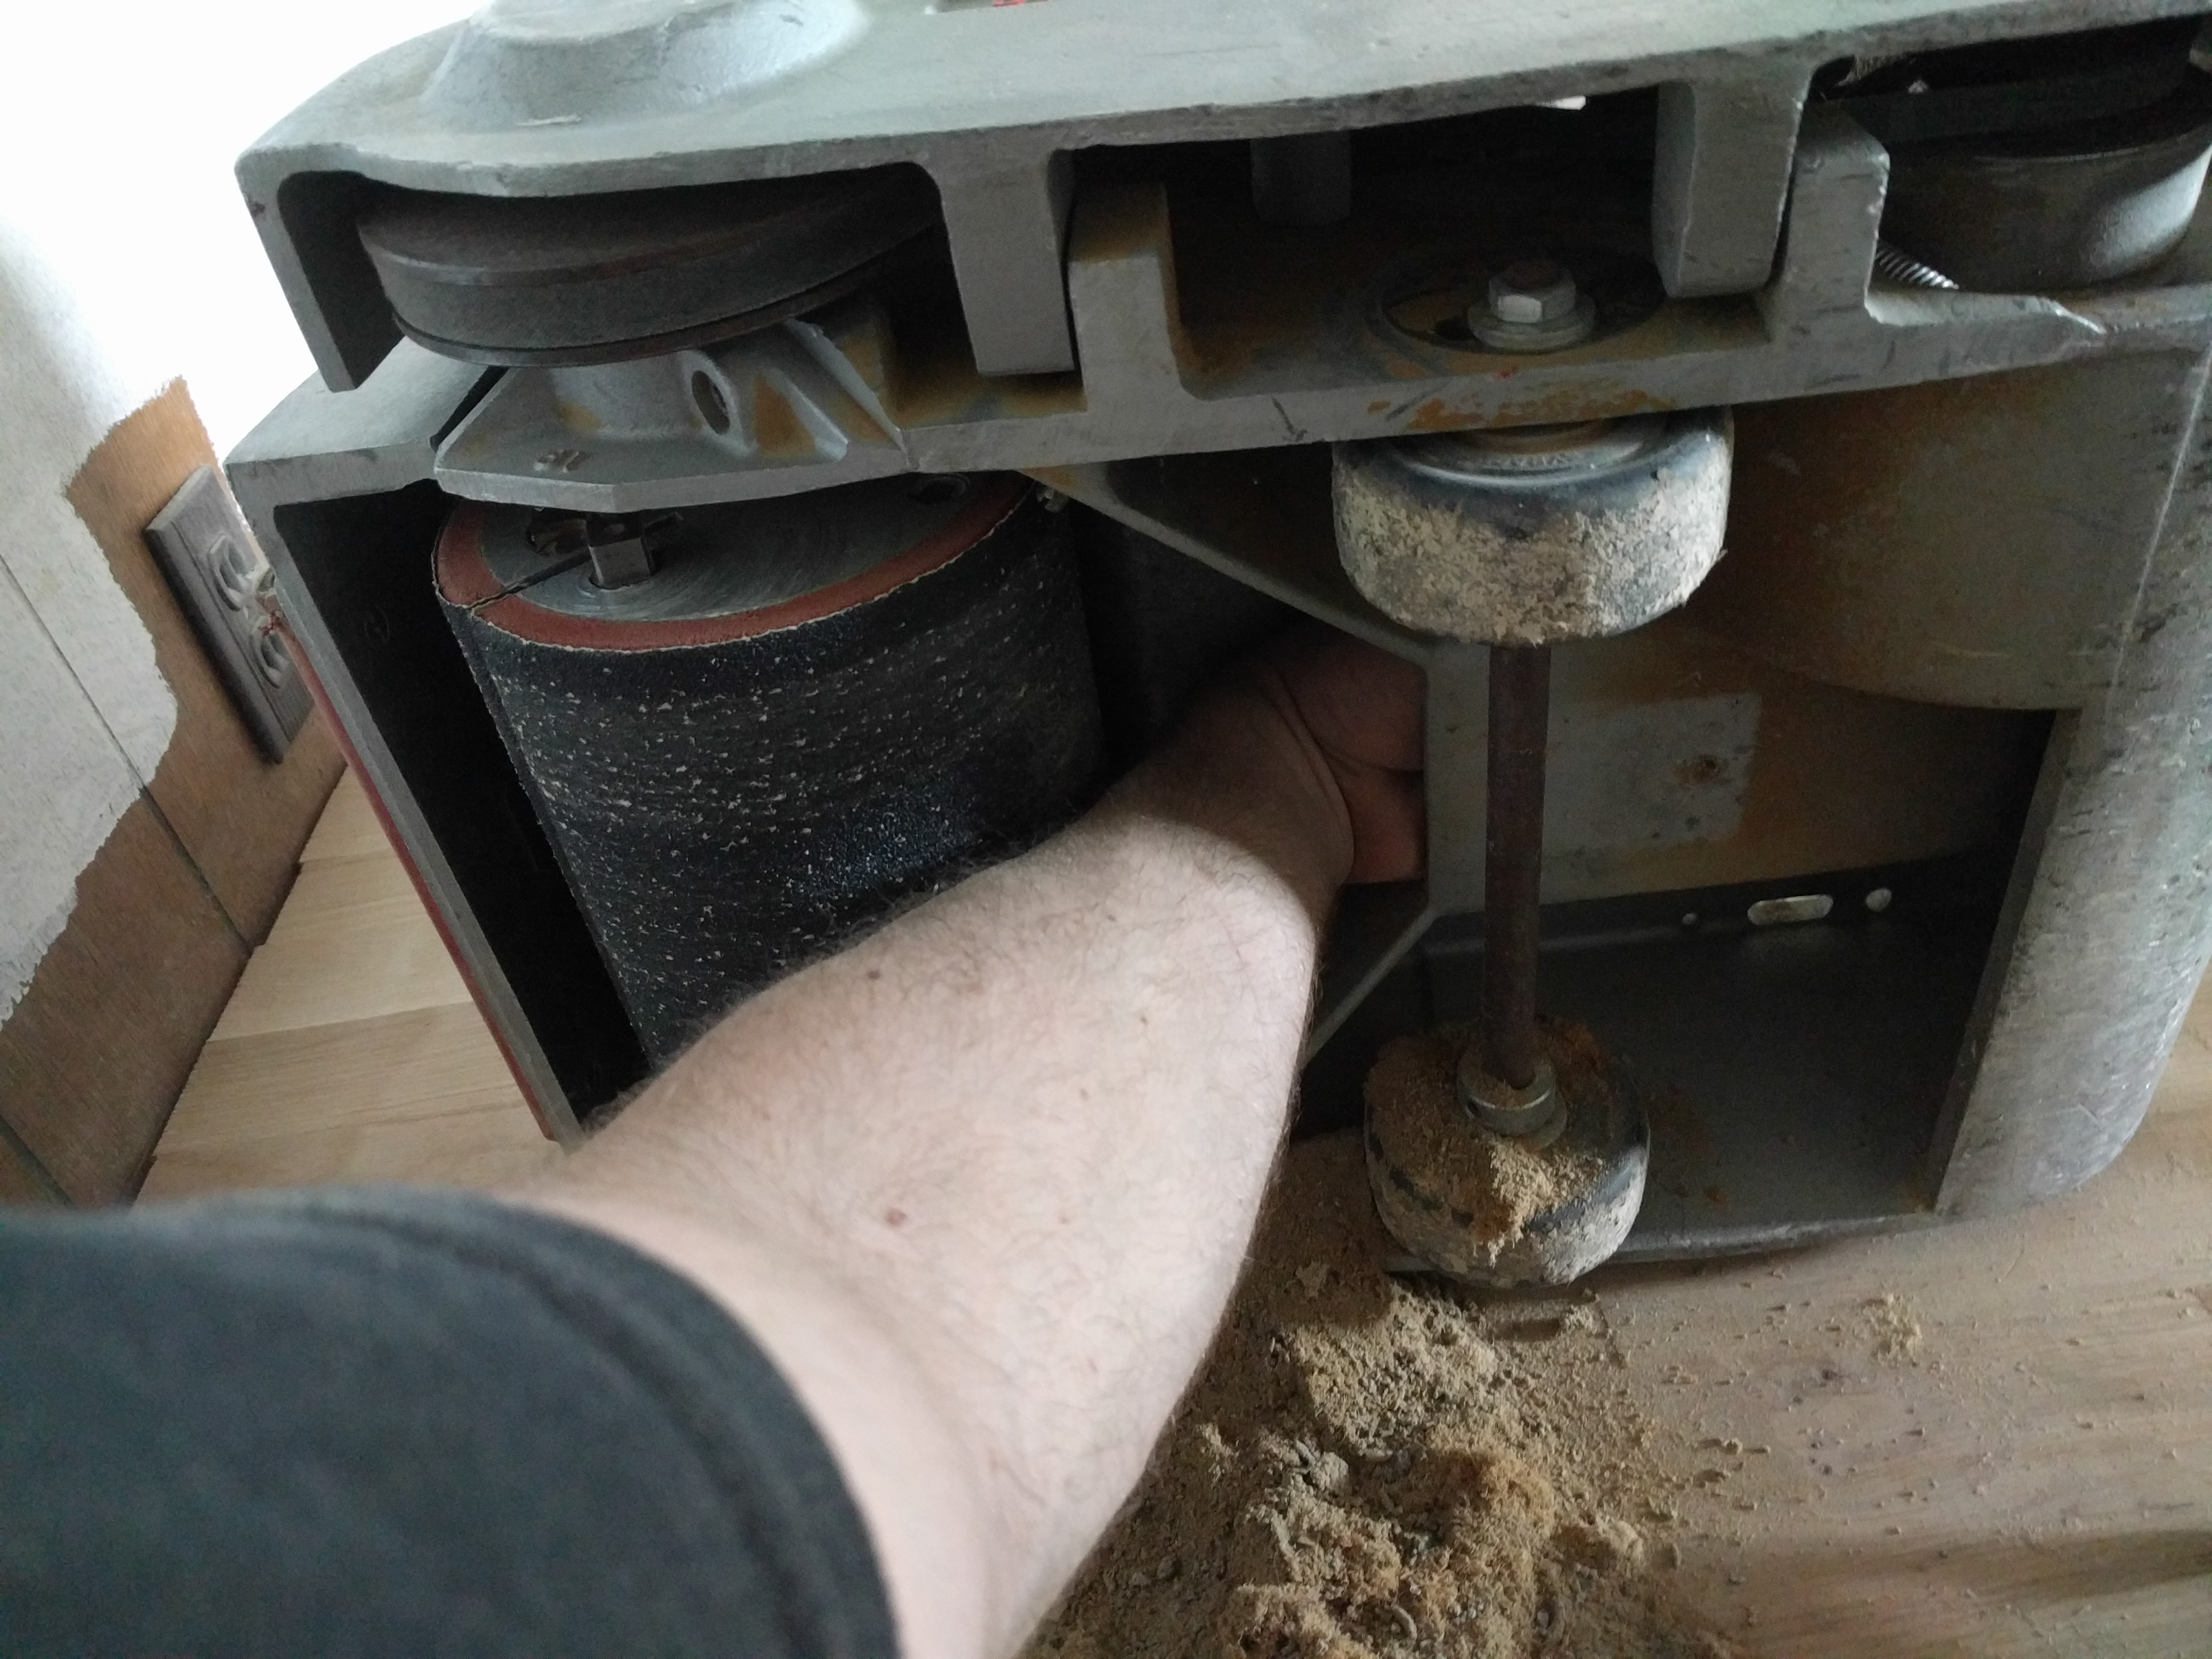 Cleaning the sander (Previous renter didn't)